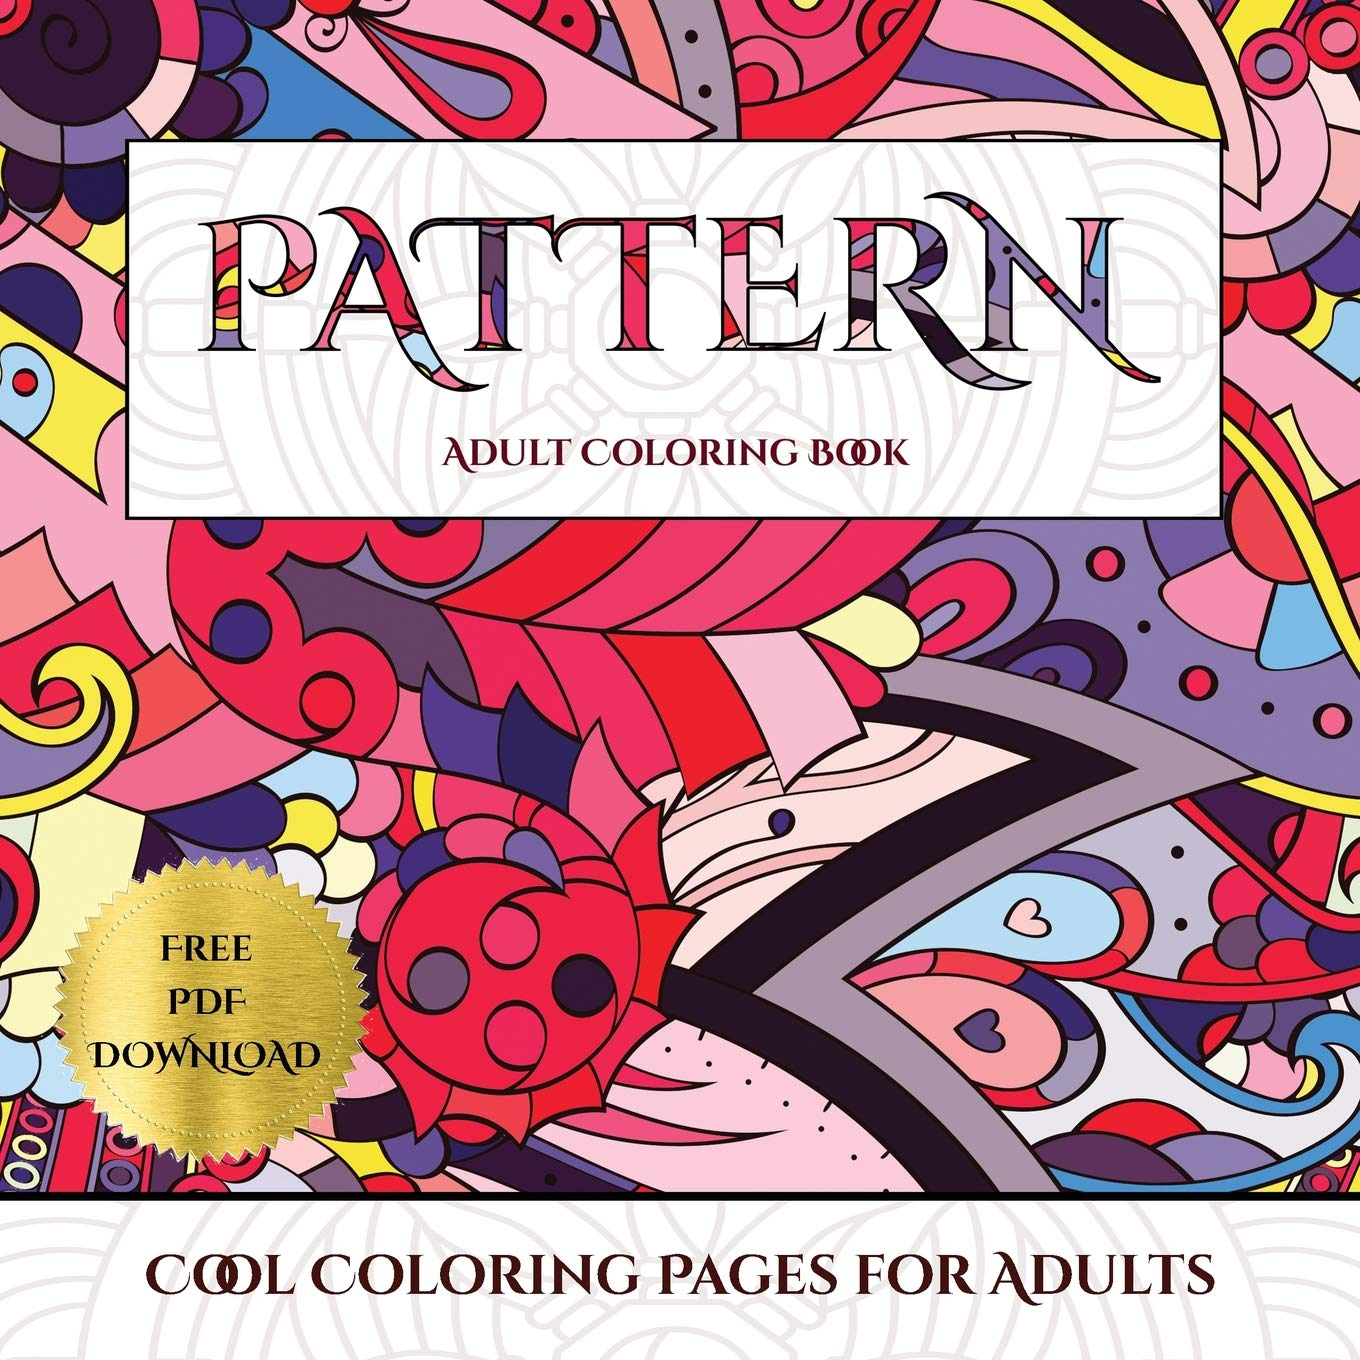 - Amazon.com: Cool Coloring Pages For Adults (Pattern): Advanced